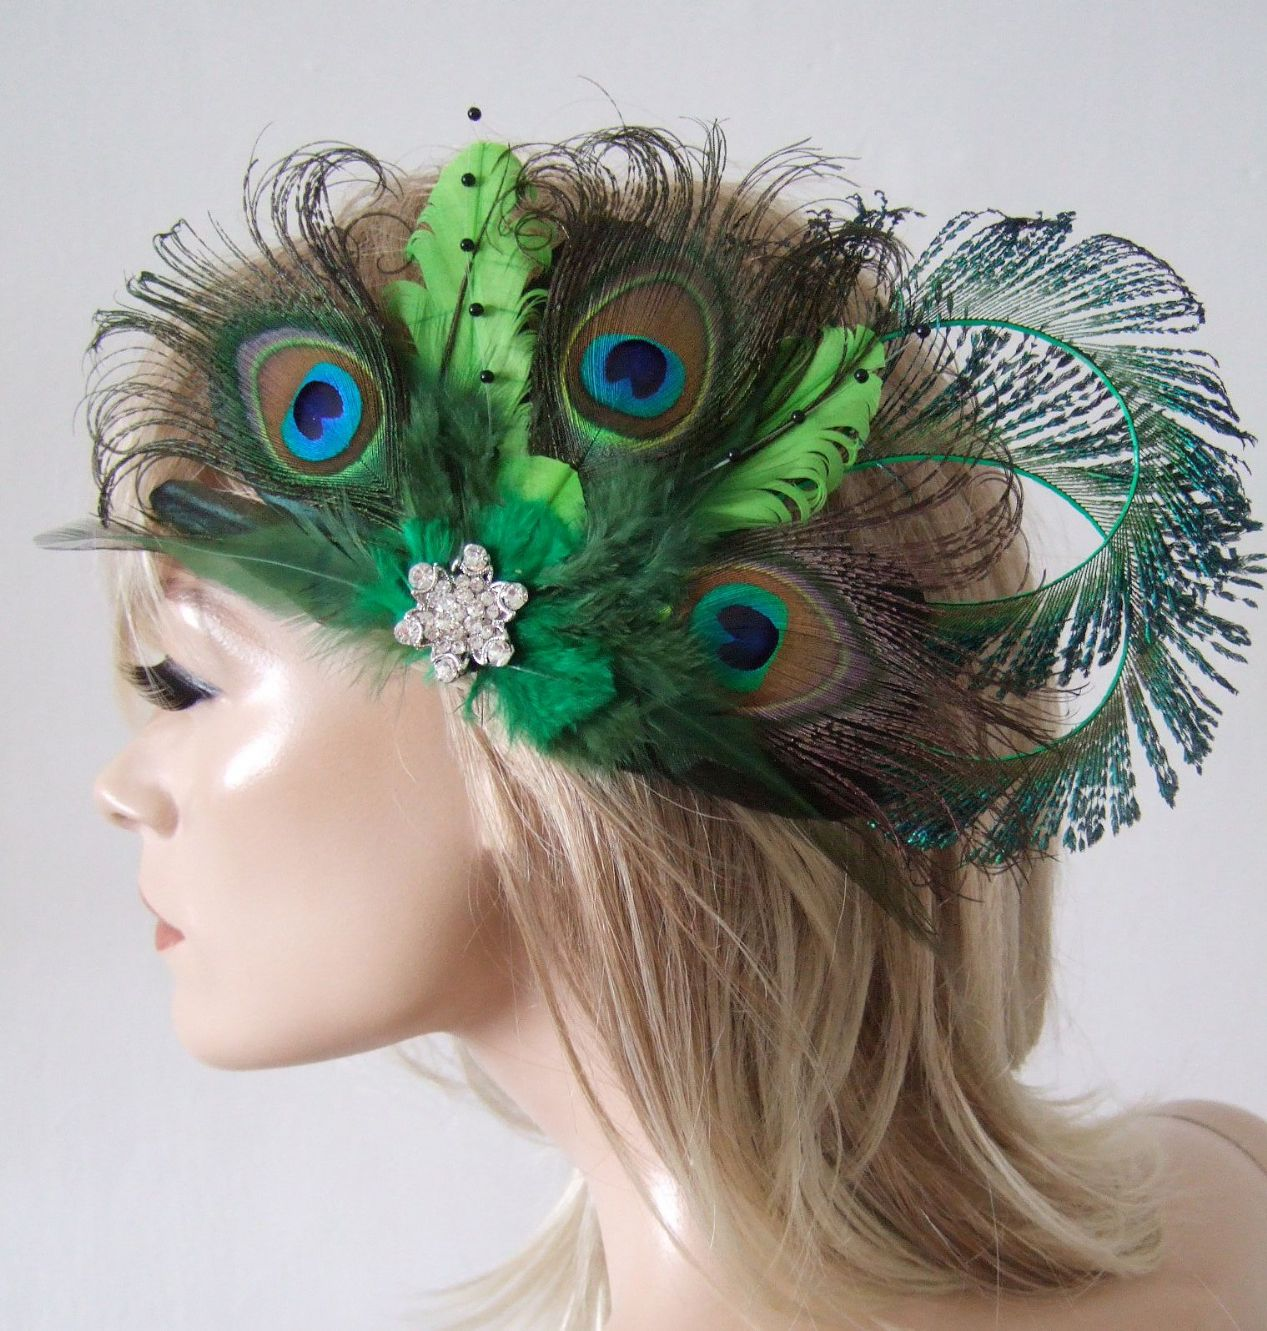 Bridal Curled Peacock Feathers Lime Olive Emerald Green Hair Headpiece Clip  Fascinator MNB118 b2f207a92f0